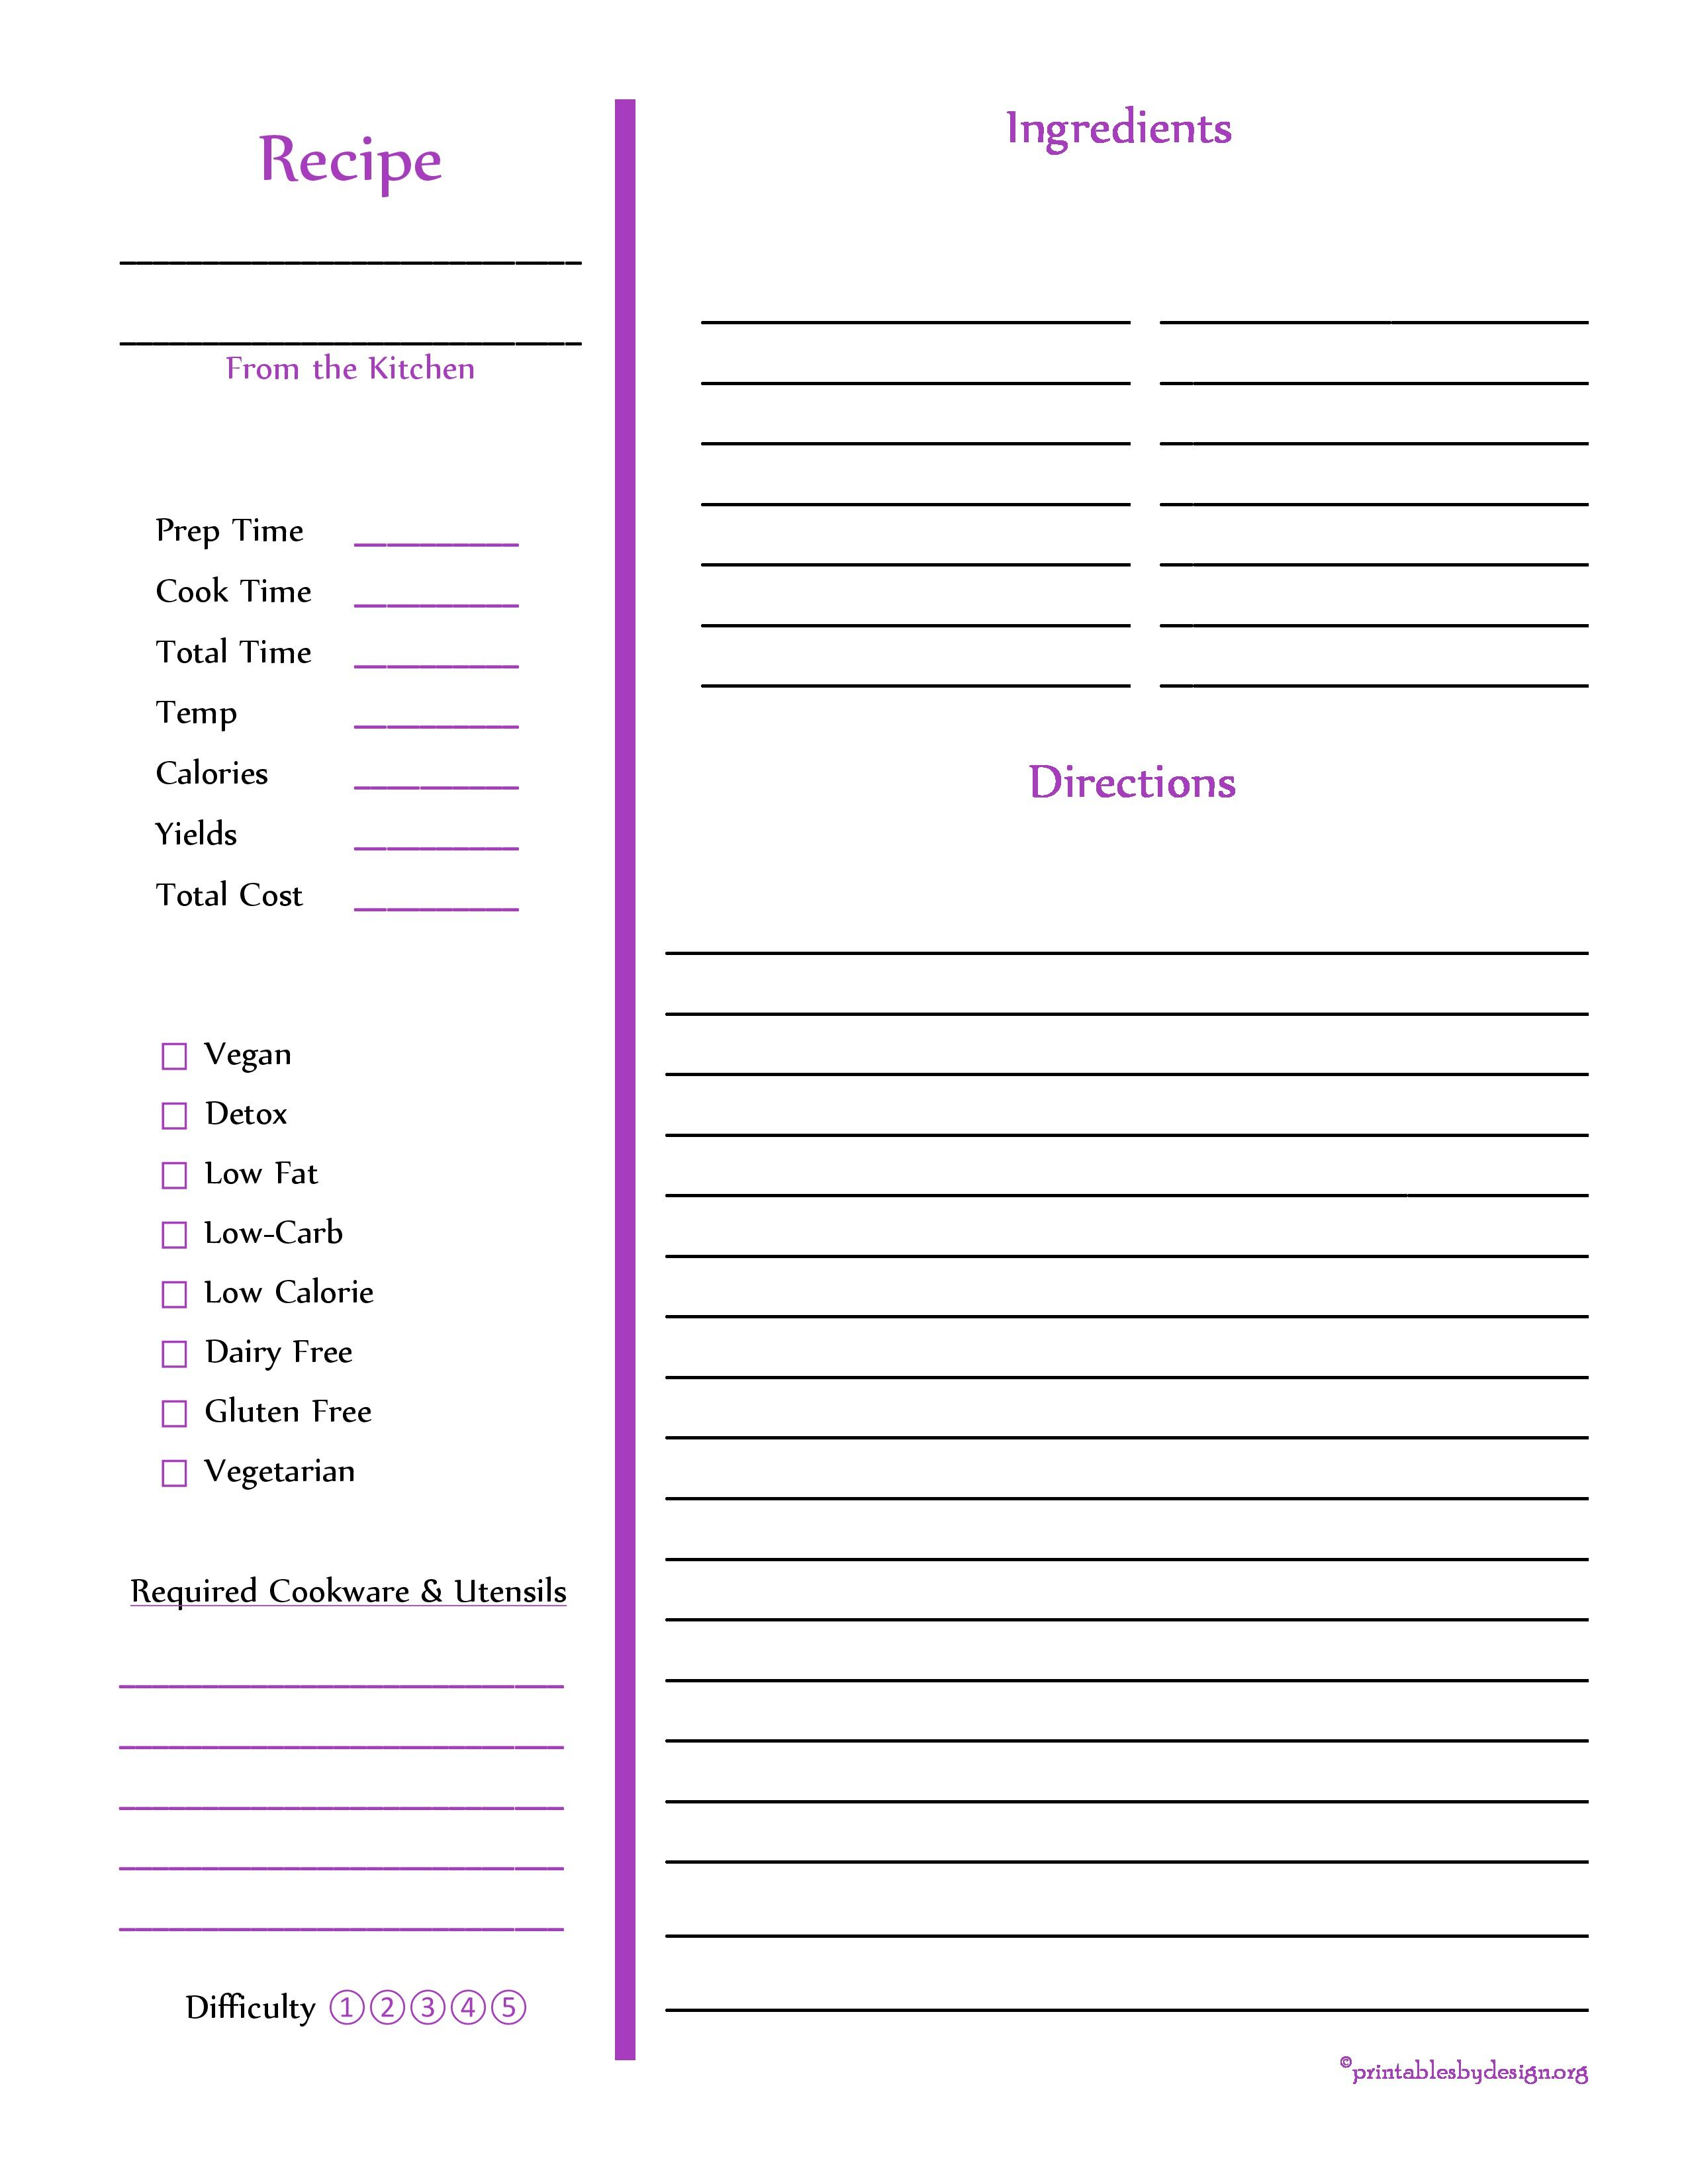 Purple Recipe Card - Full Page   All things Cooking hacks, canning ...